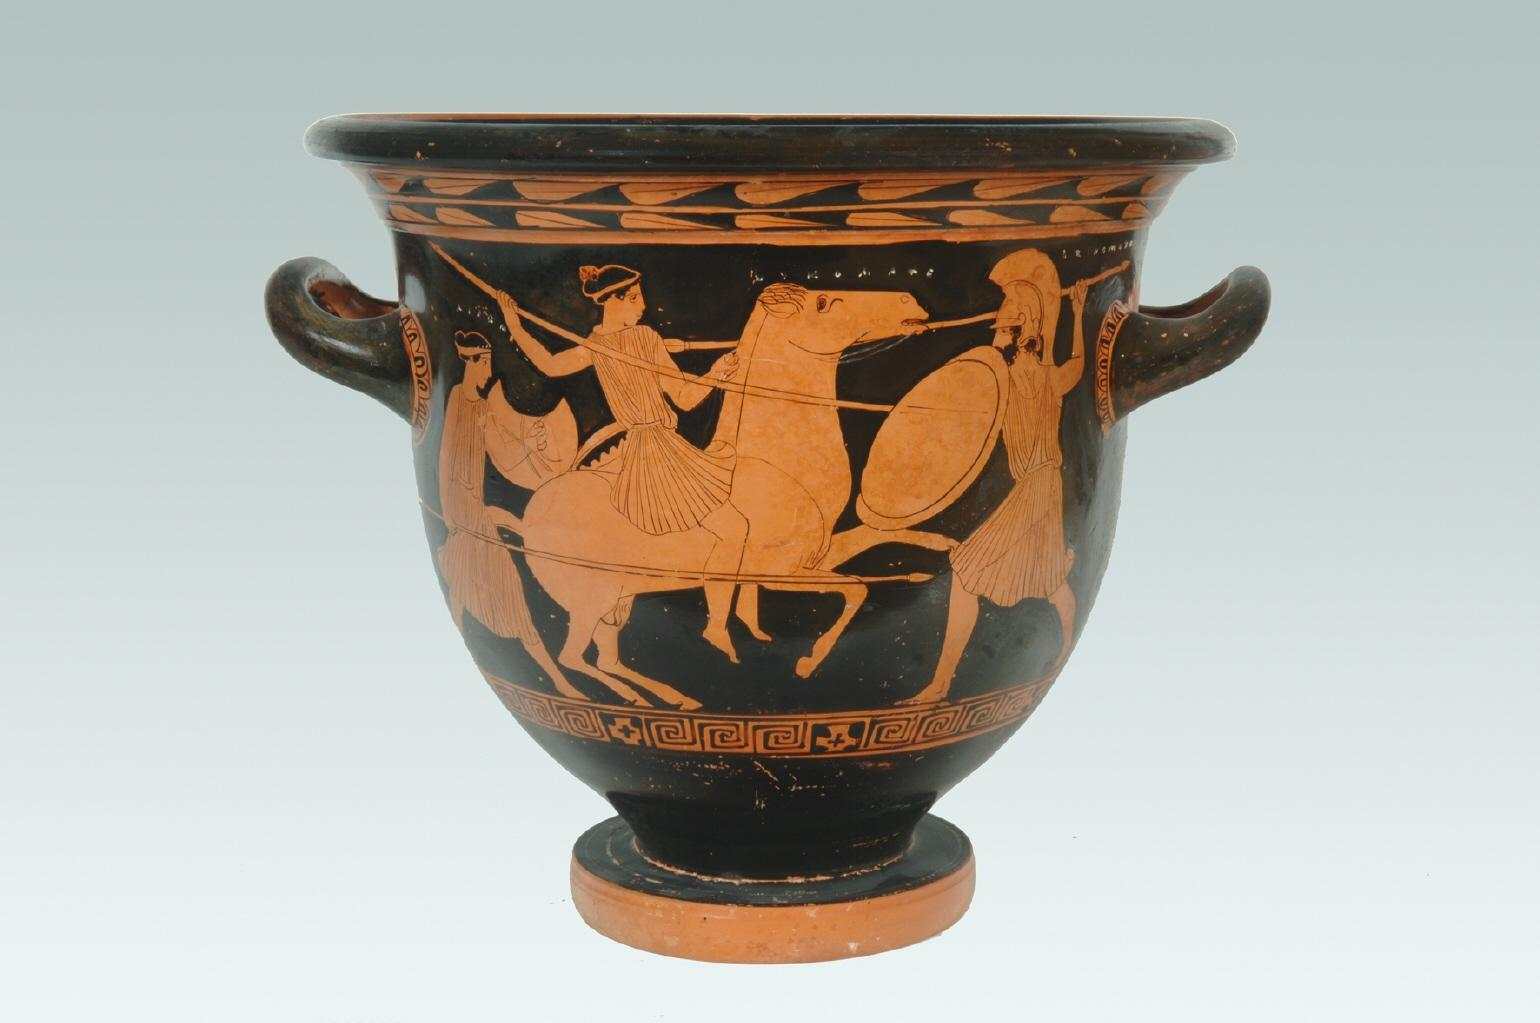 Bell-krater showing a battle of two Amazons and one Greek,cr. 440 BC, Attica